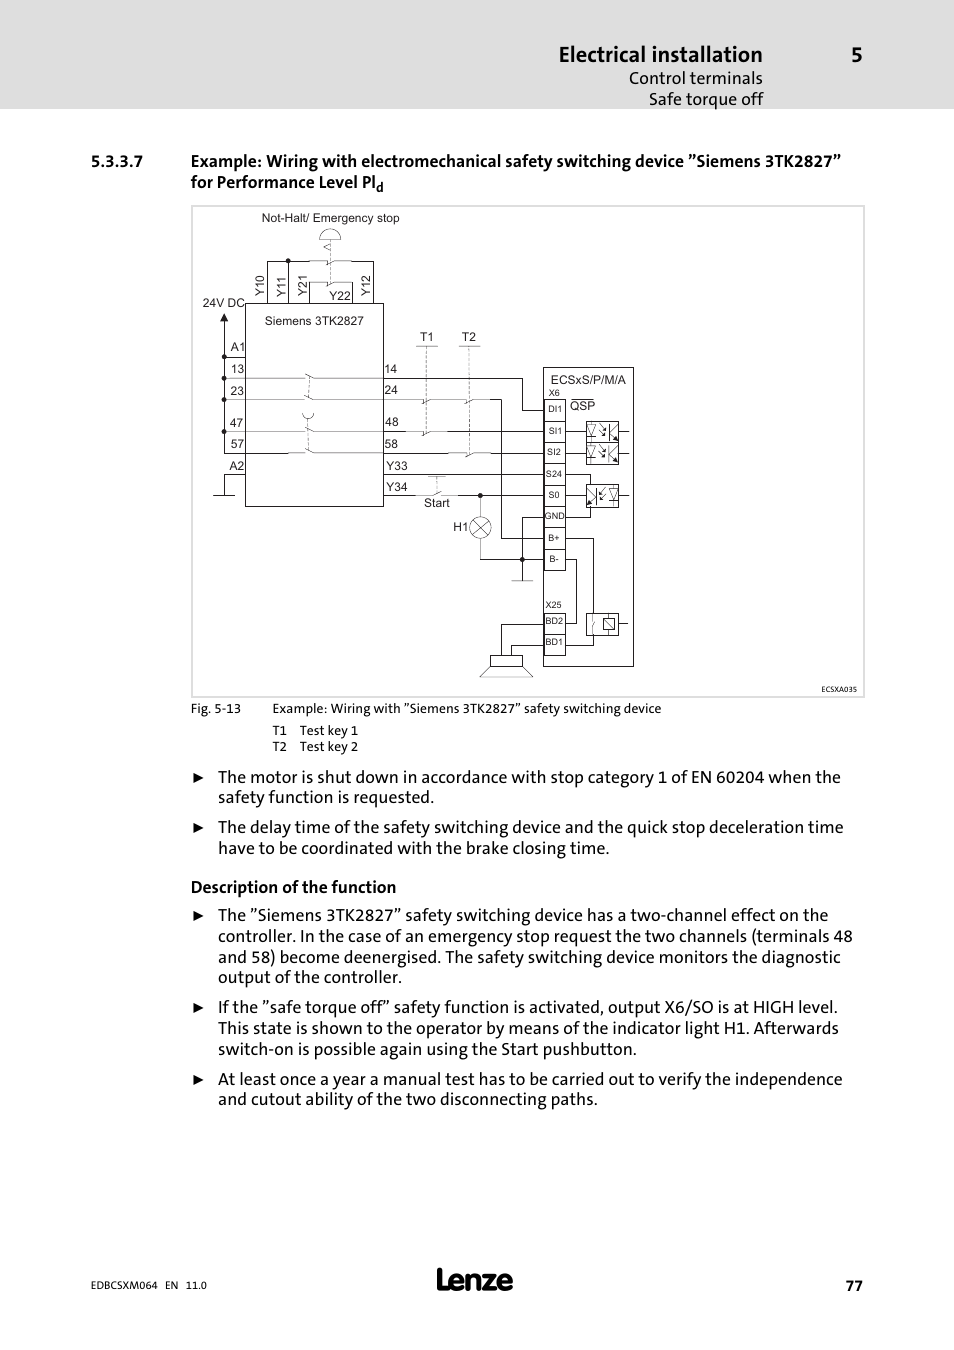 Electrical Installation Control Terminals Safe Torque Off Lenze Wiring Diagrams Ecscmxxx User Manual Page 77 375